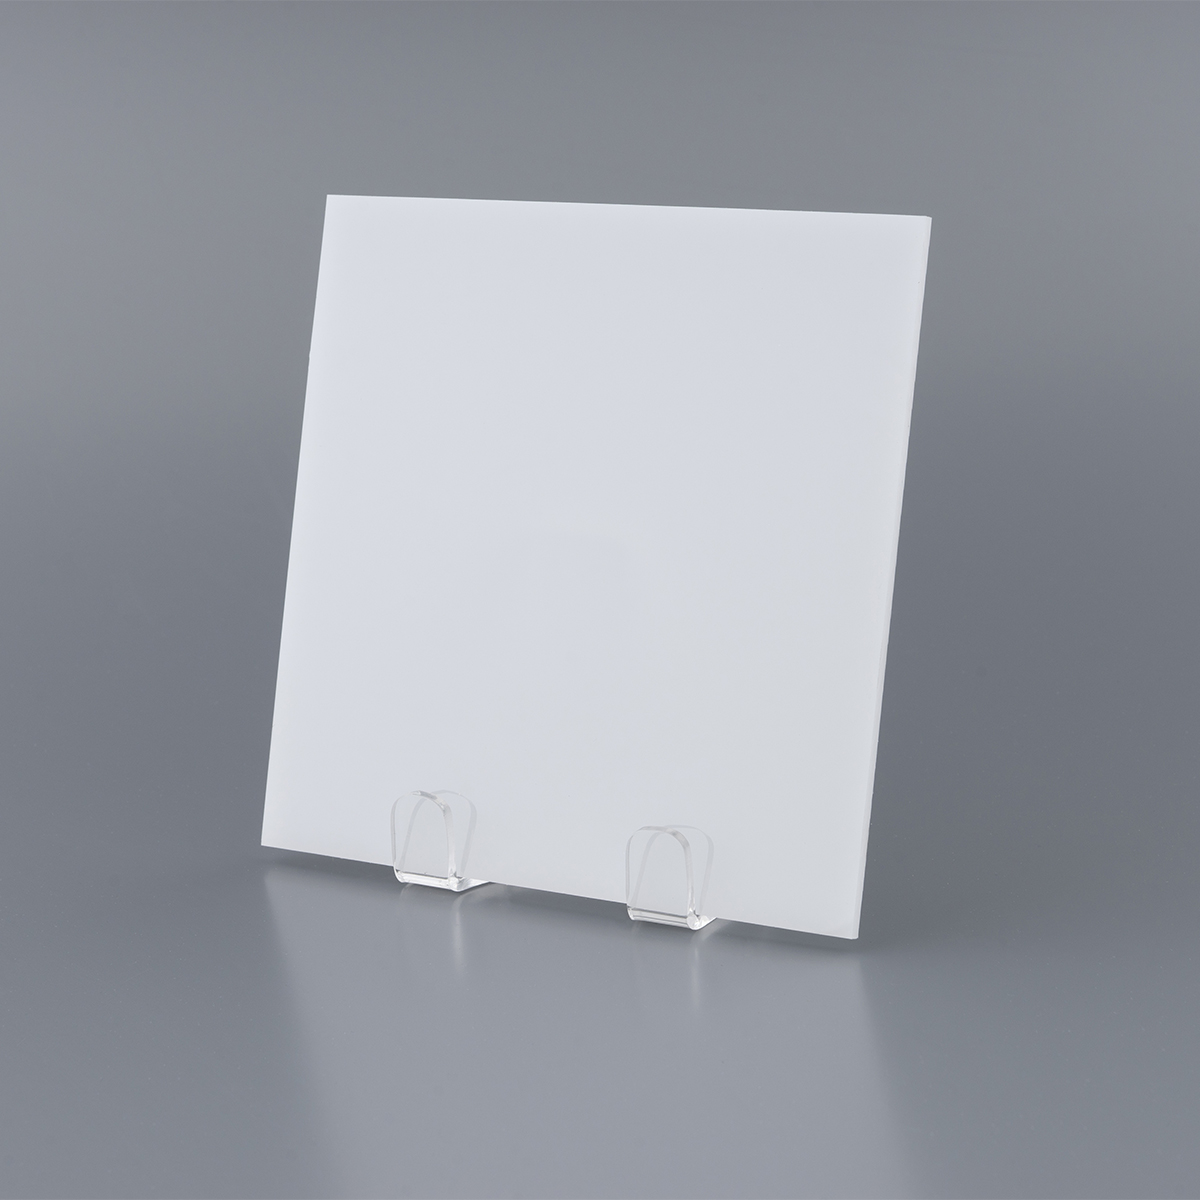 3mm Opal Polycarbonate Sheet With Uv Protection On Both